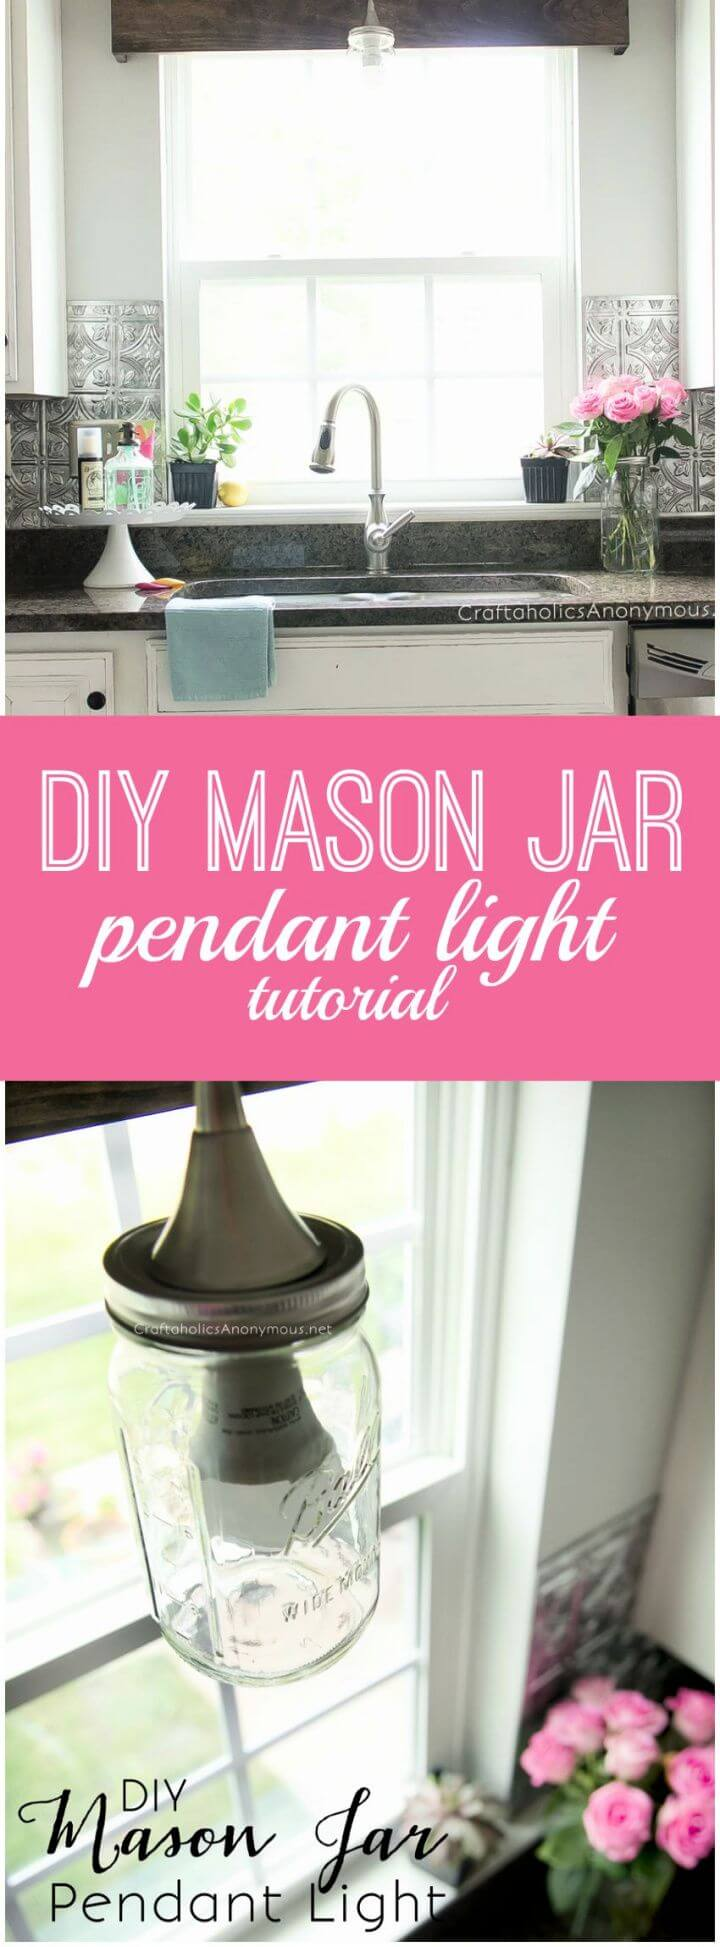 Easy DIY Mason Jar Pendant Light Tutorial